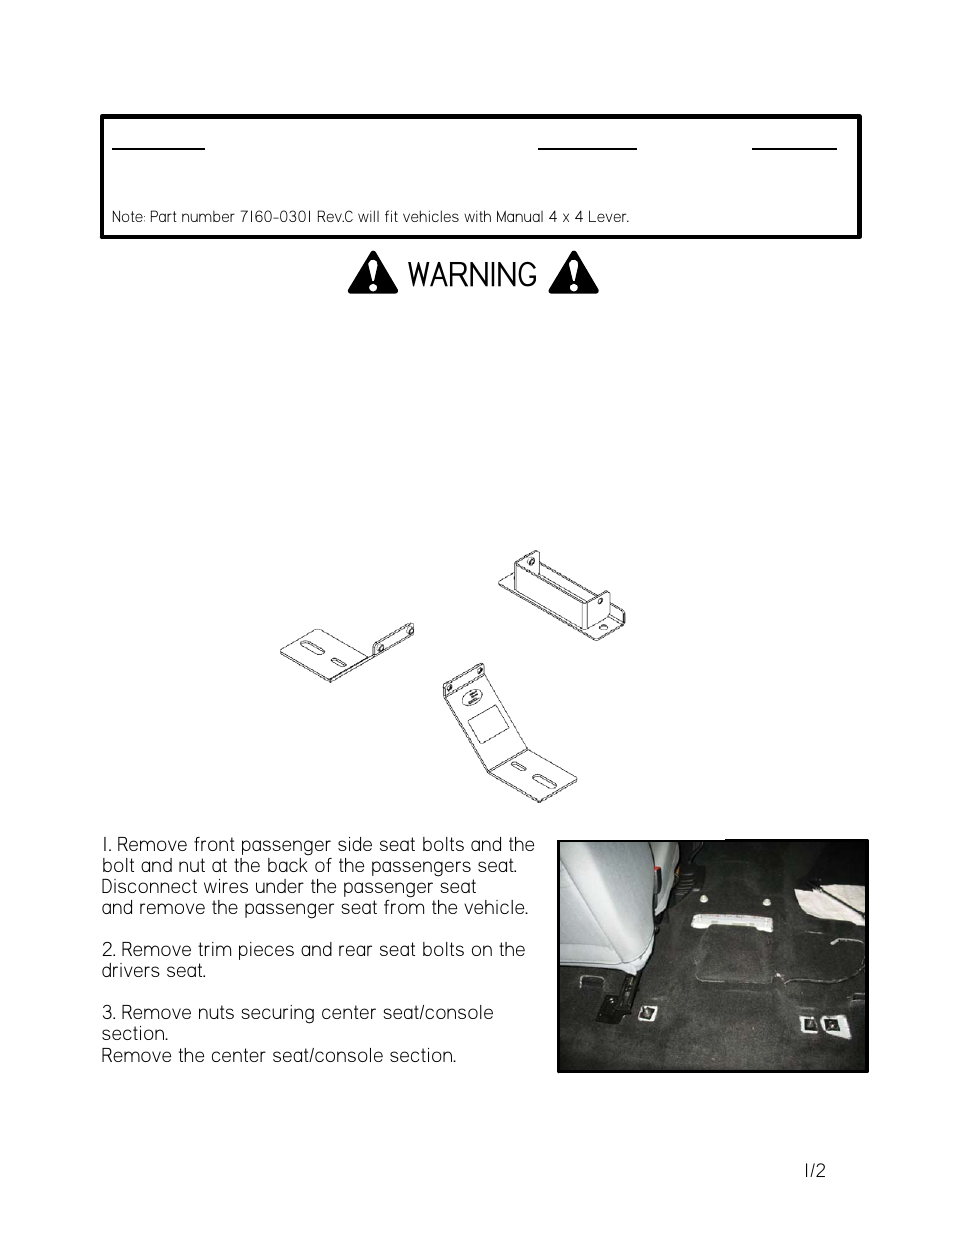 Gamber Johnson 7160 0301 User Manual 2 Pages Ford F 450 Super Duty Wiring Schematic